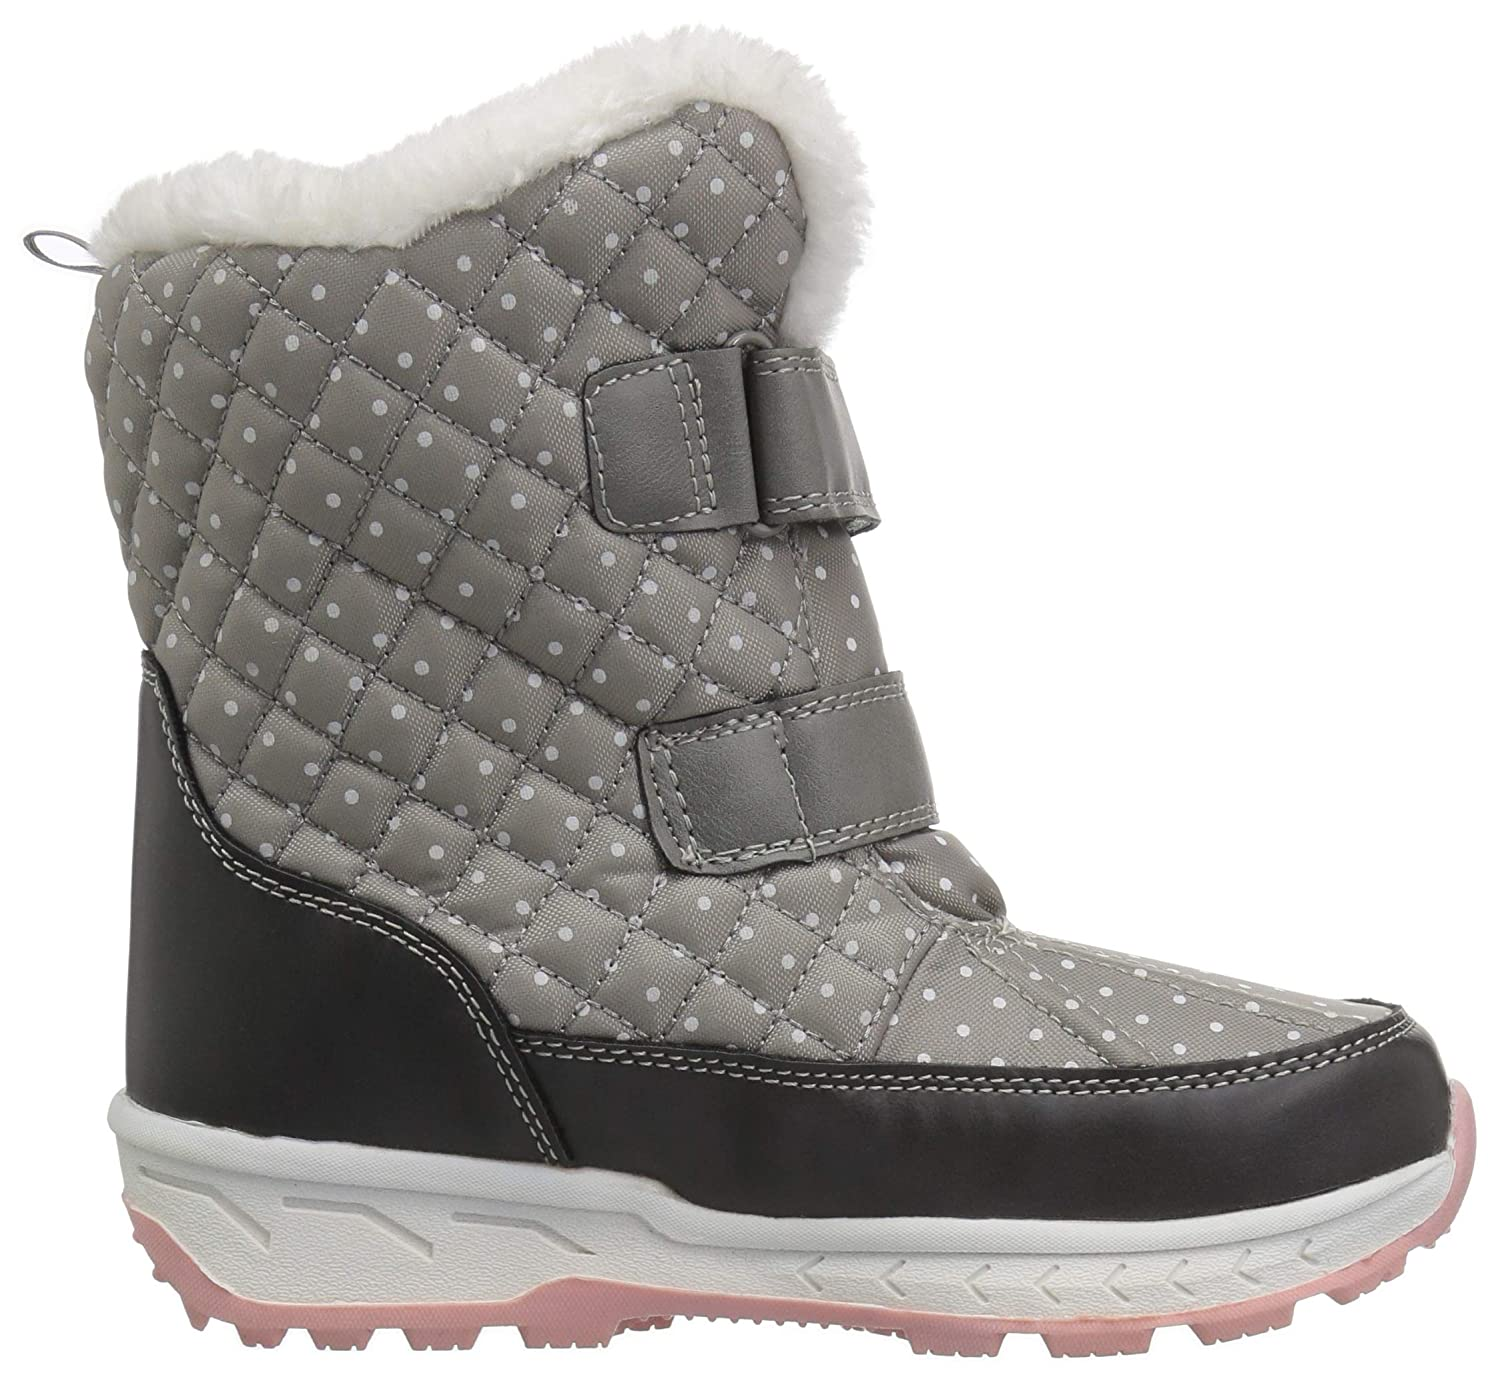 Carters Girls Fonda Cold Weather Boot